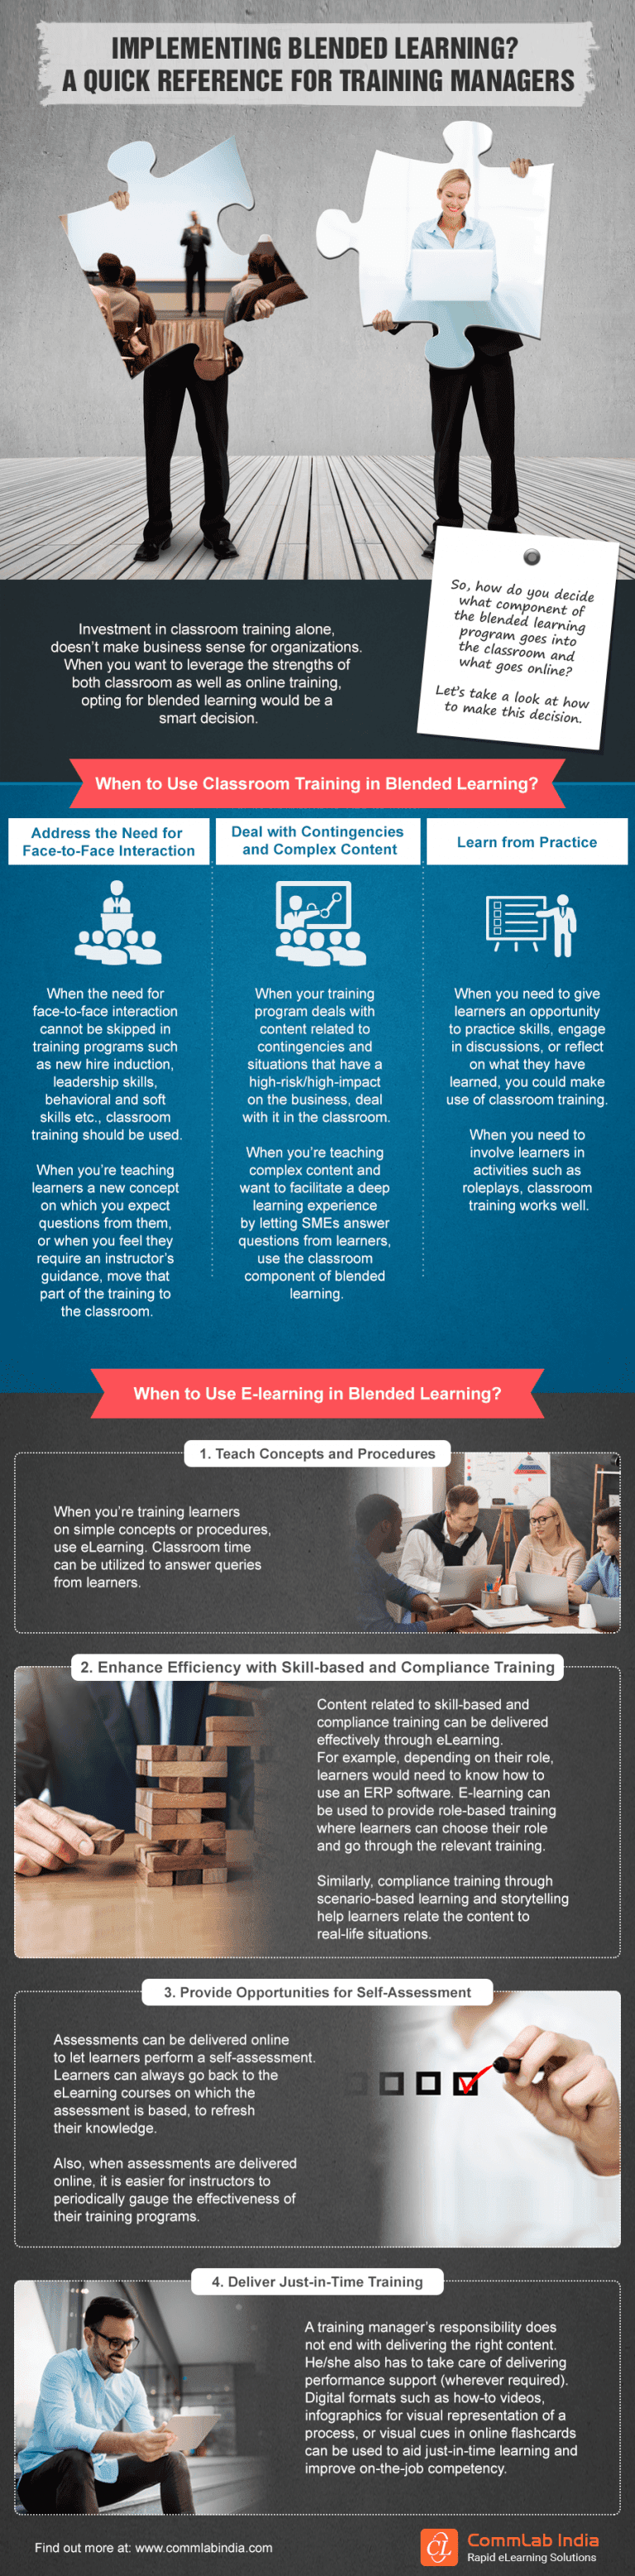 Implementing Blended Learning? A Quick Reference For Training Managers #infographic